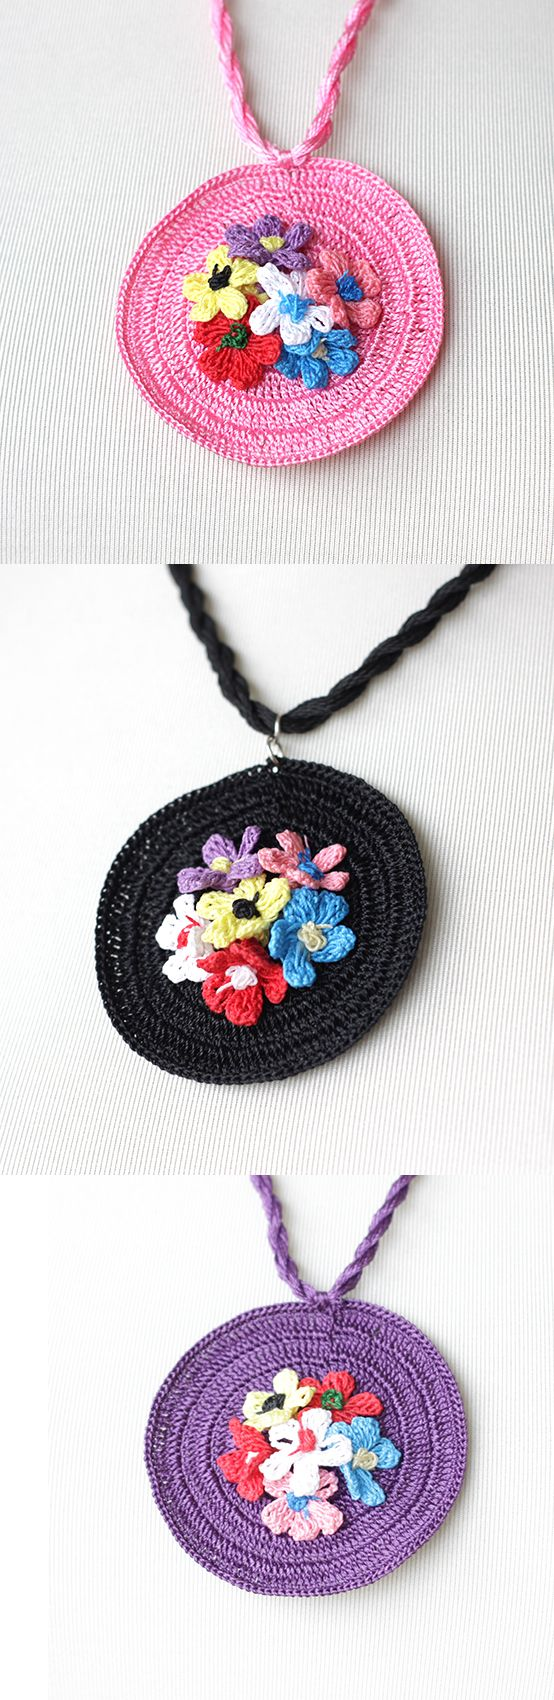 Colar Croché -  /    Crochet Necklace -